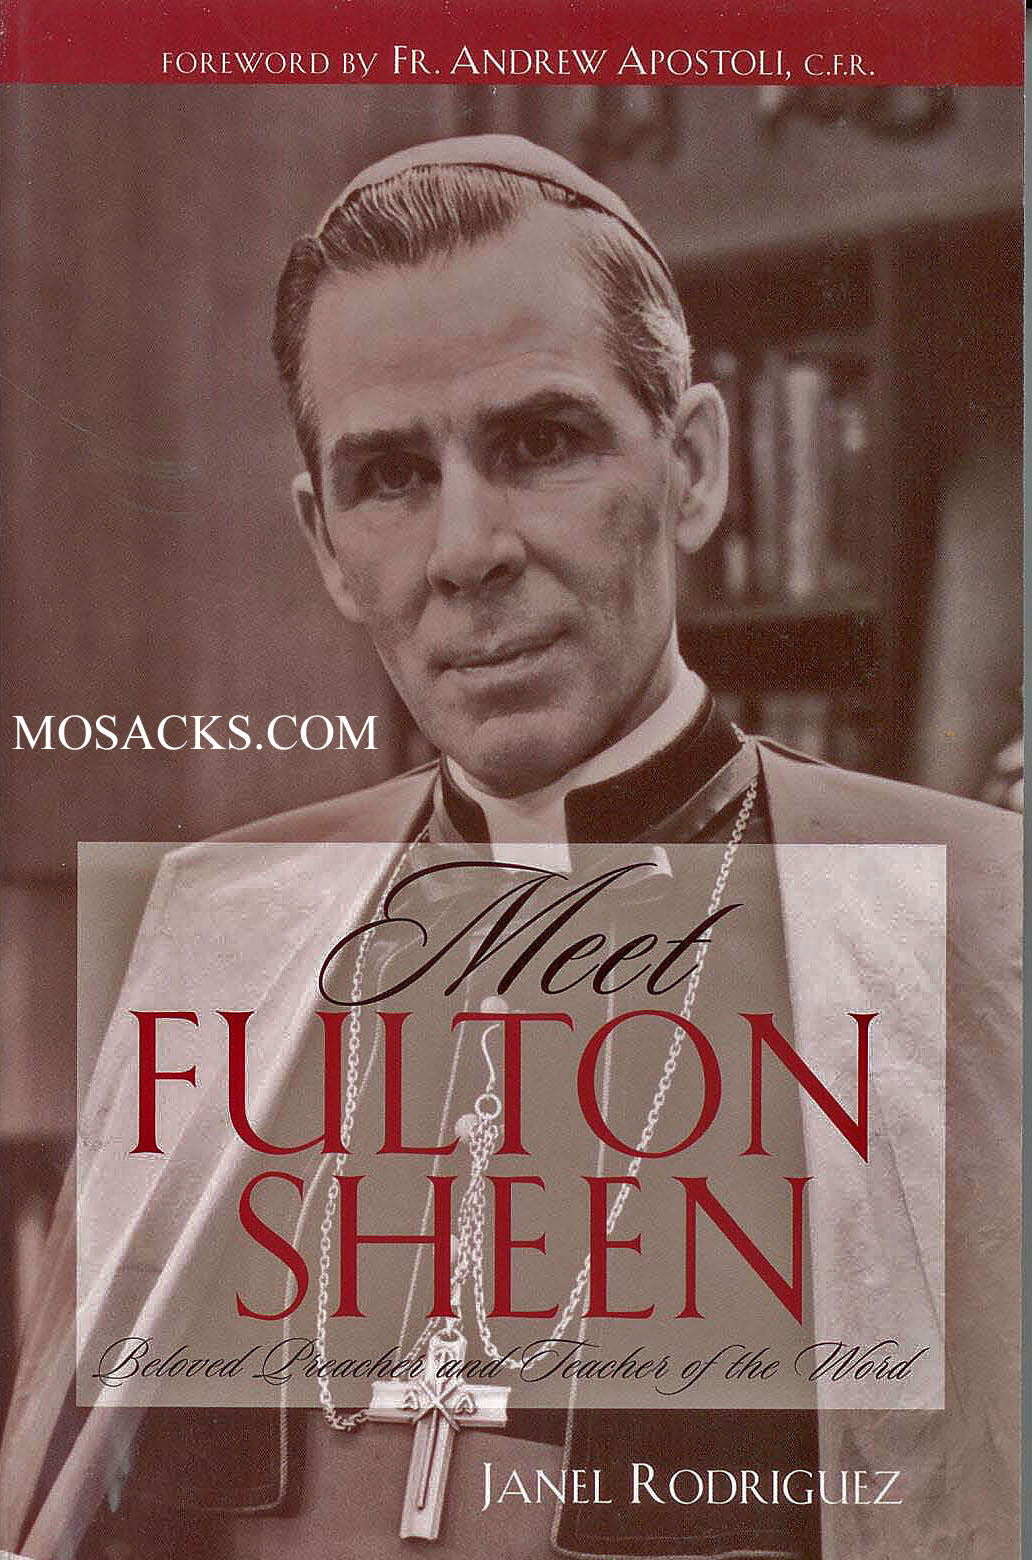 Meet Fulton Sheen by Janel Rodriguez